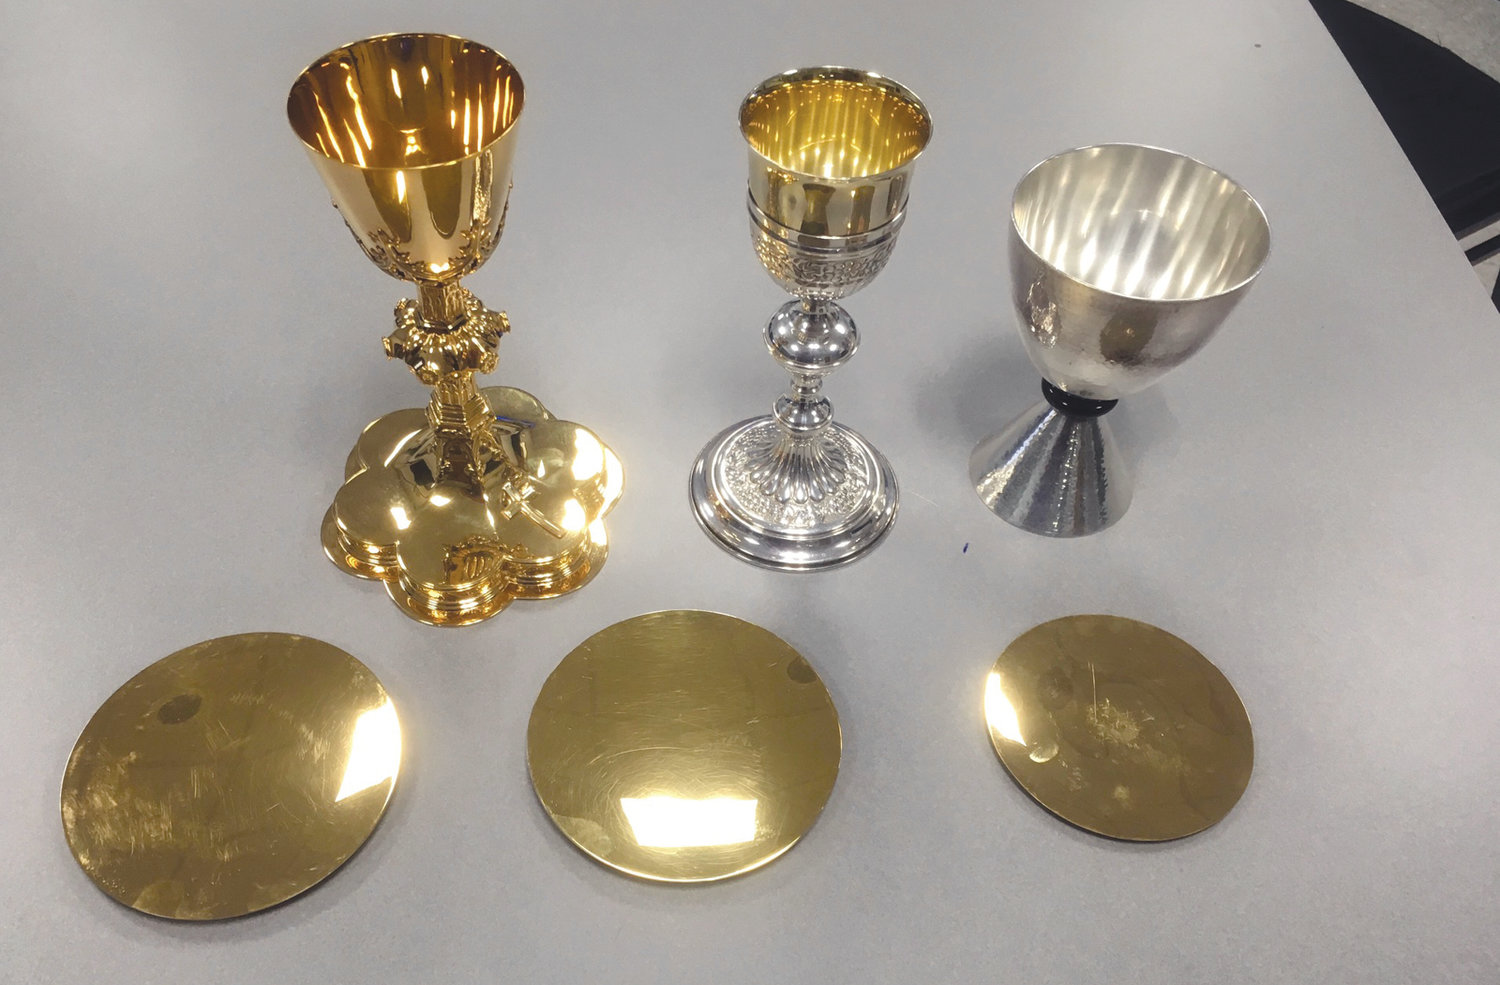 SAFE AND SECURE: These are three of the chalices recovered by the Johnston Police Department following the Oct. 22 theft at St. Rocco's Church. One chalice had been pieced out. The estimated combined value of the chalices was about $10,000.